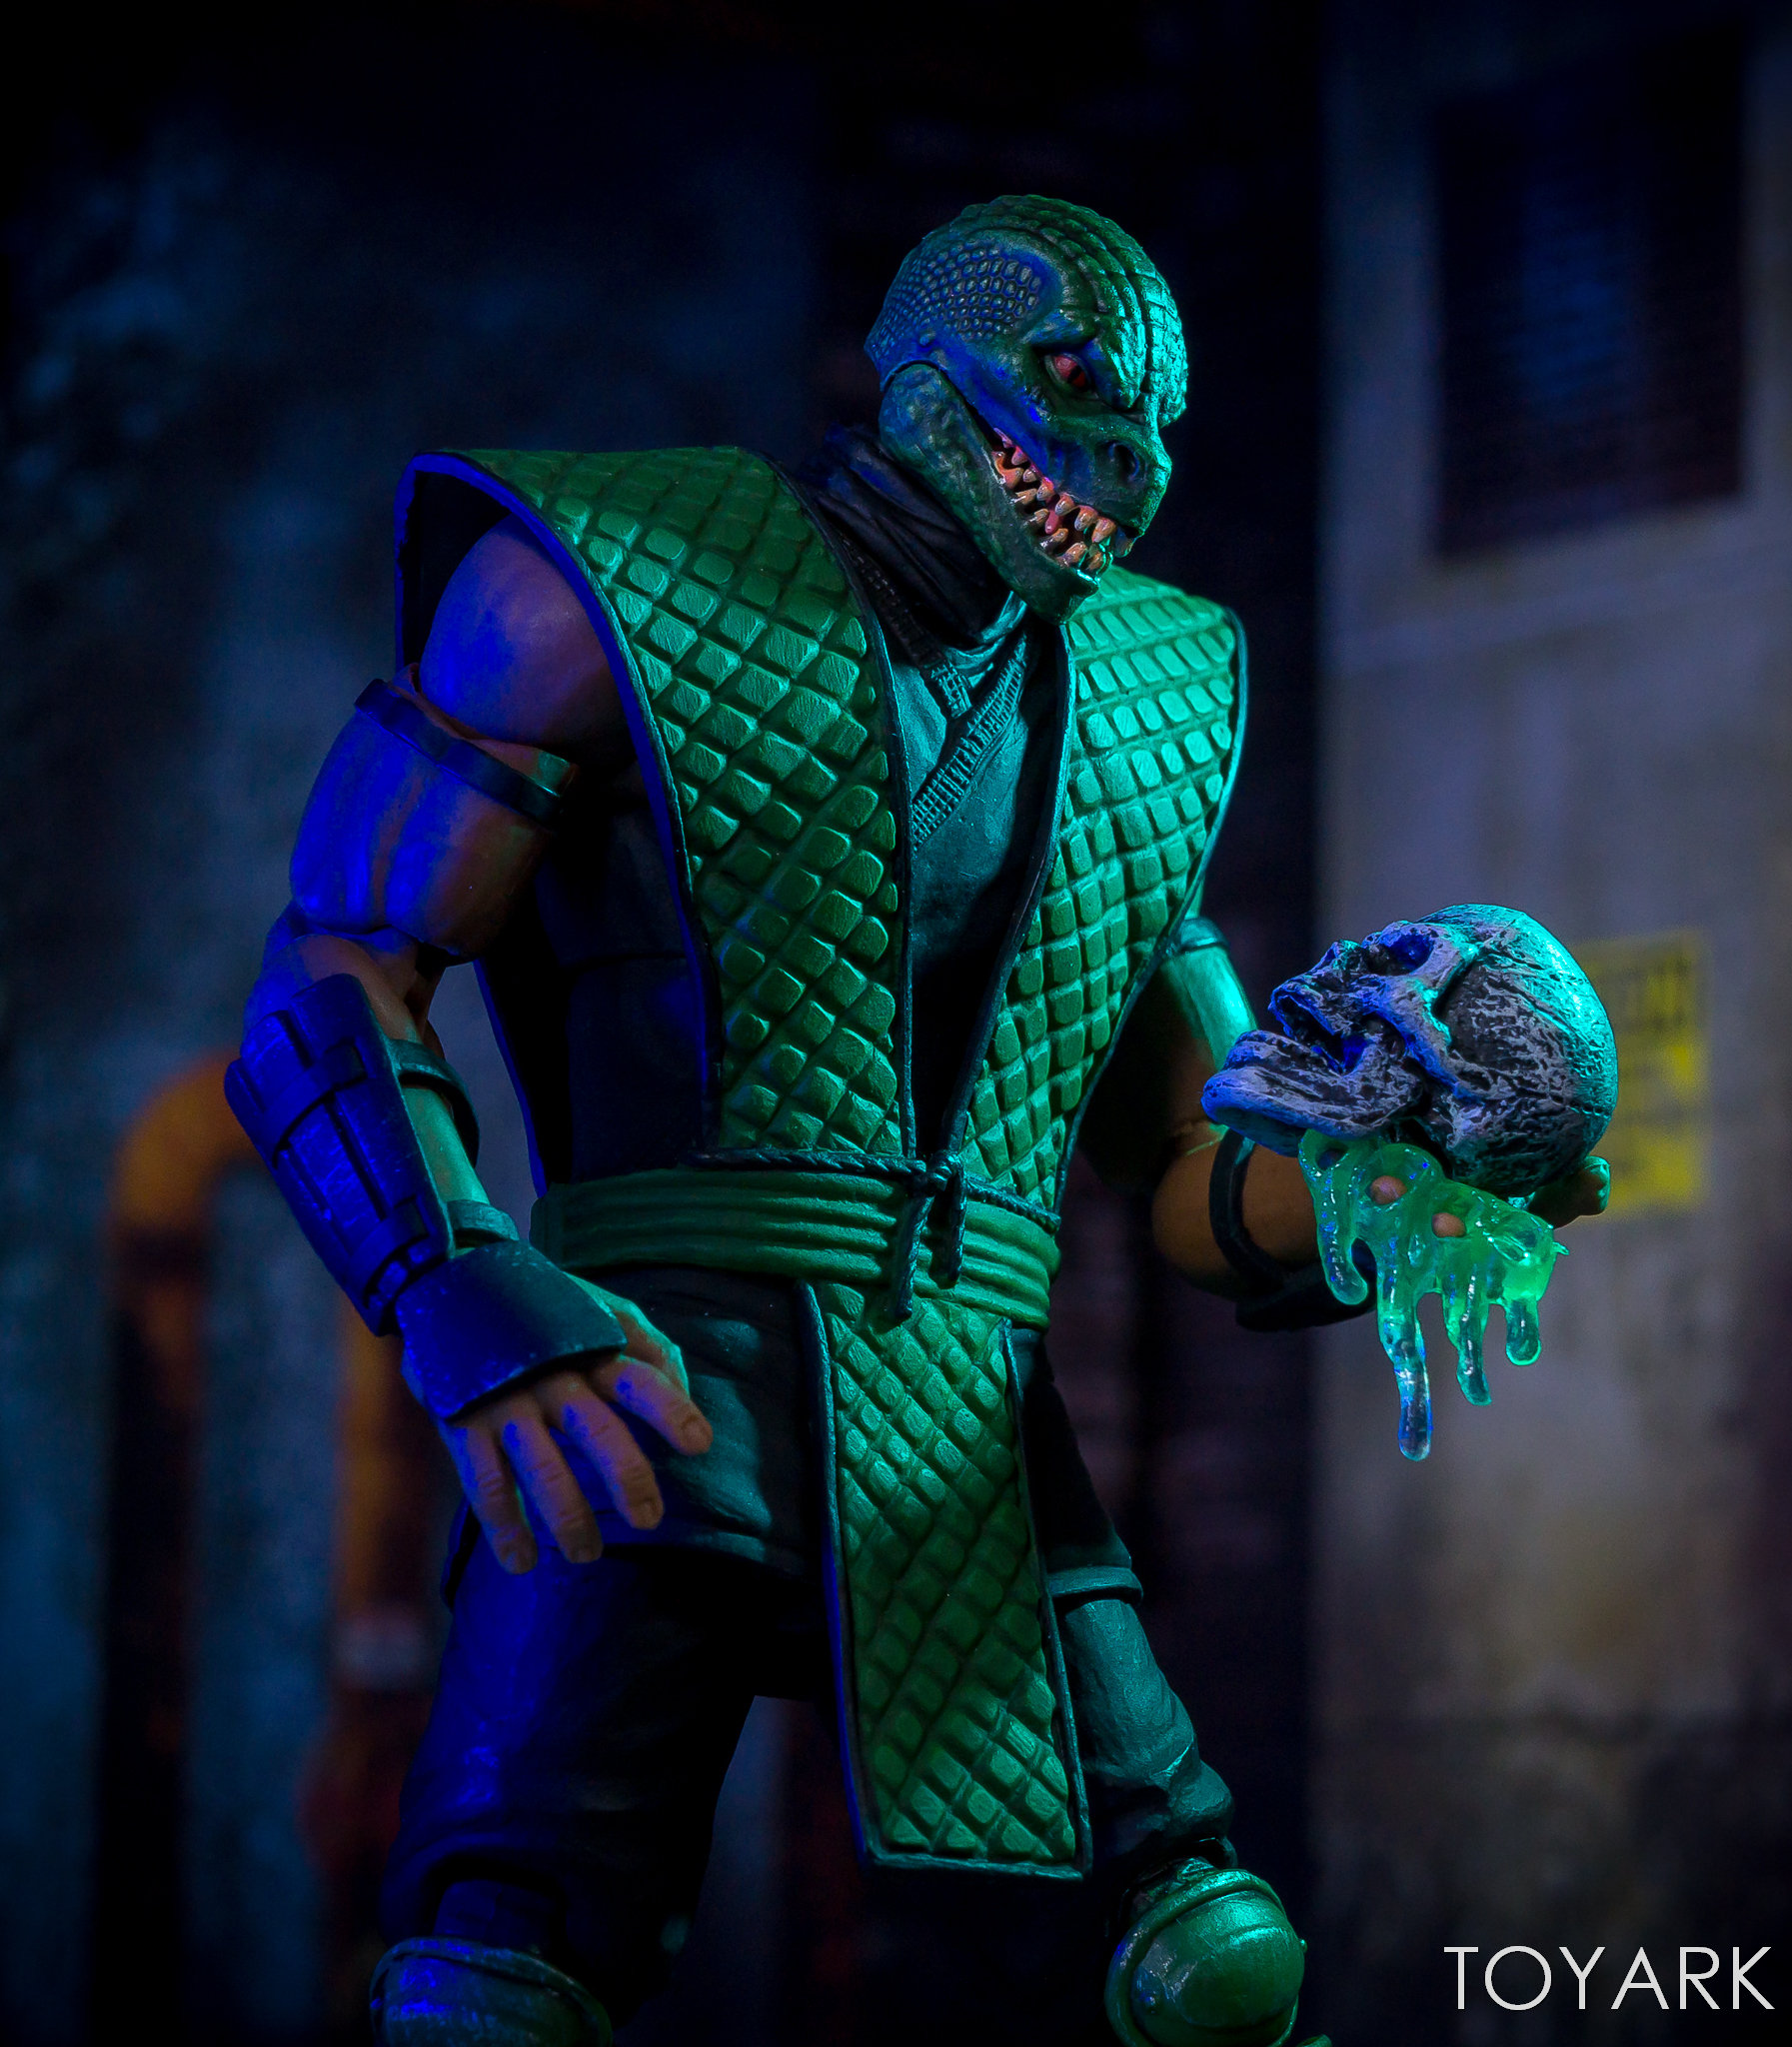 http://news.toyark.com/wp-content/uploads/sites/4/2018/02/Storm-Mortal-Kombat-Reptile-044.jpg